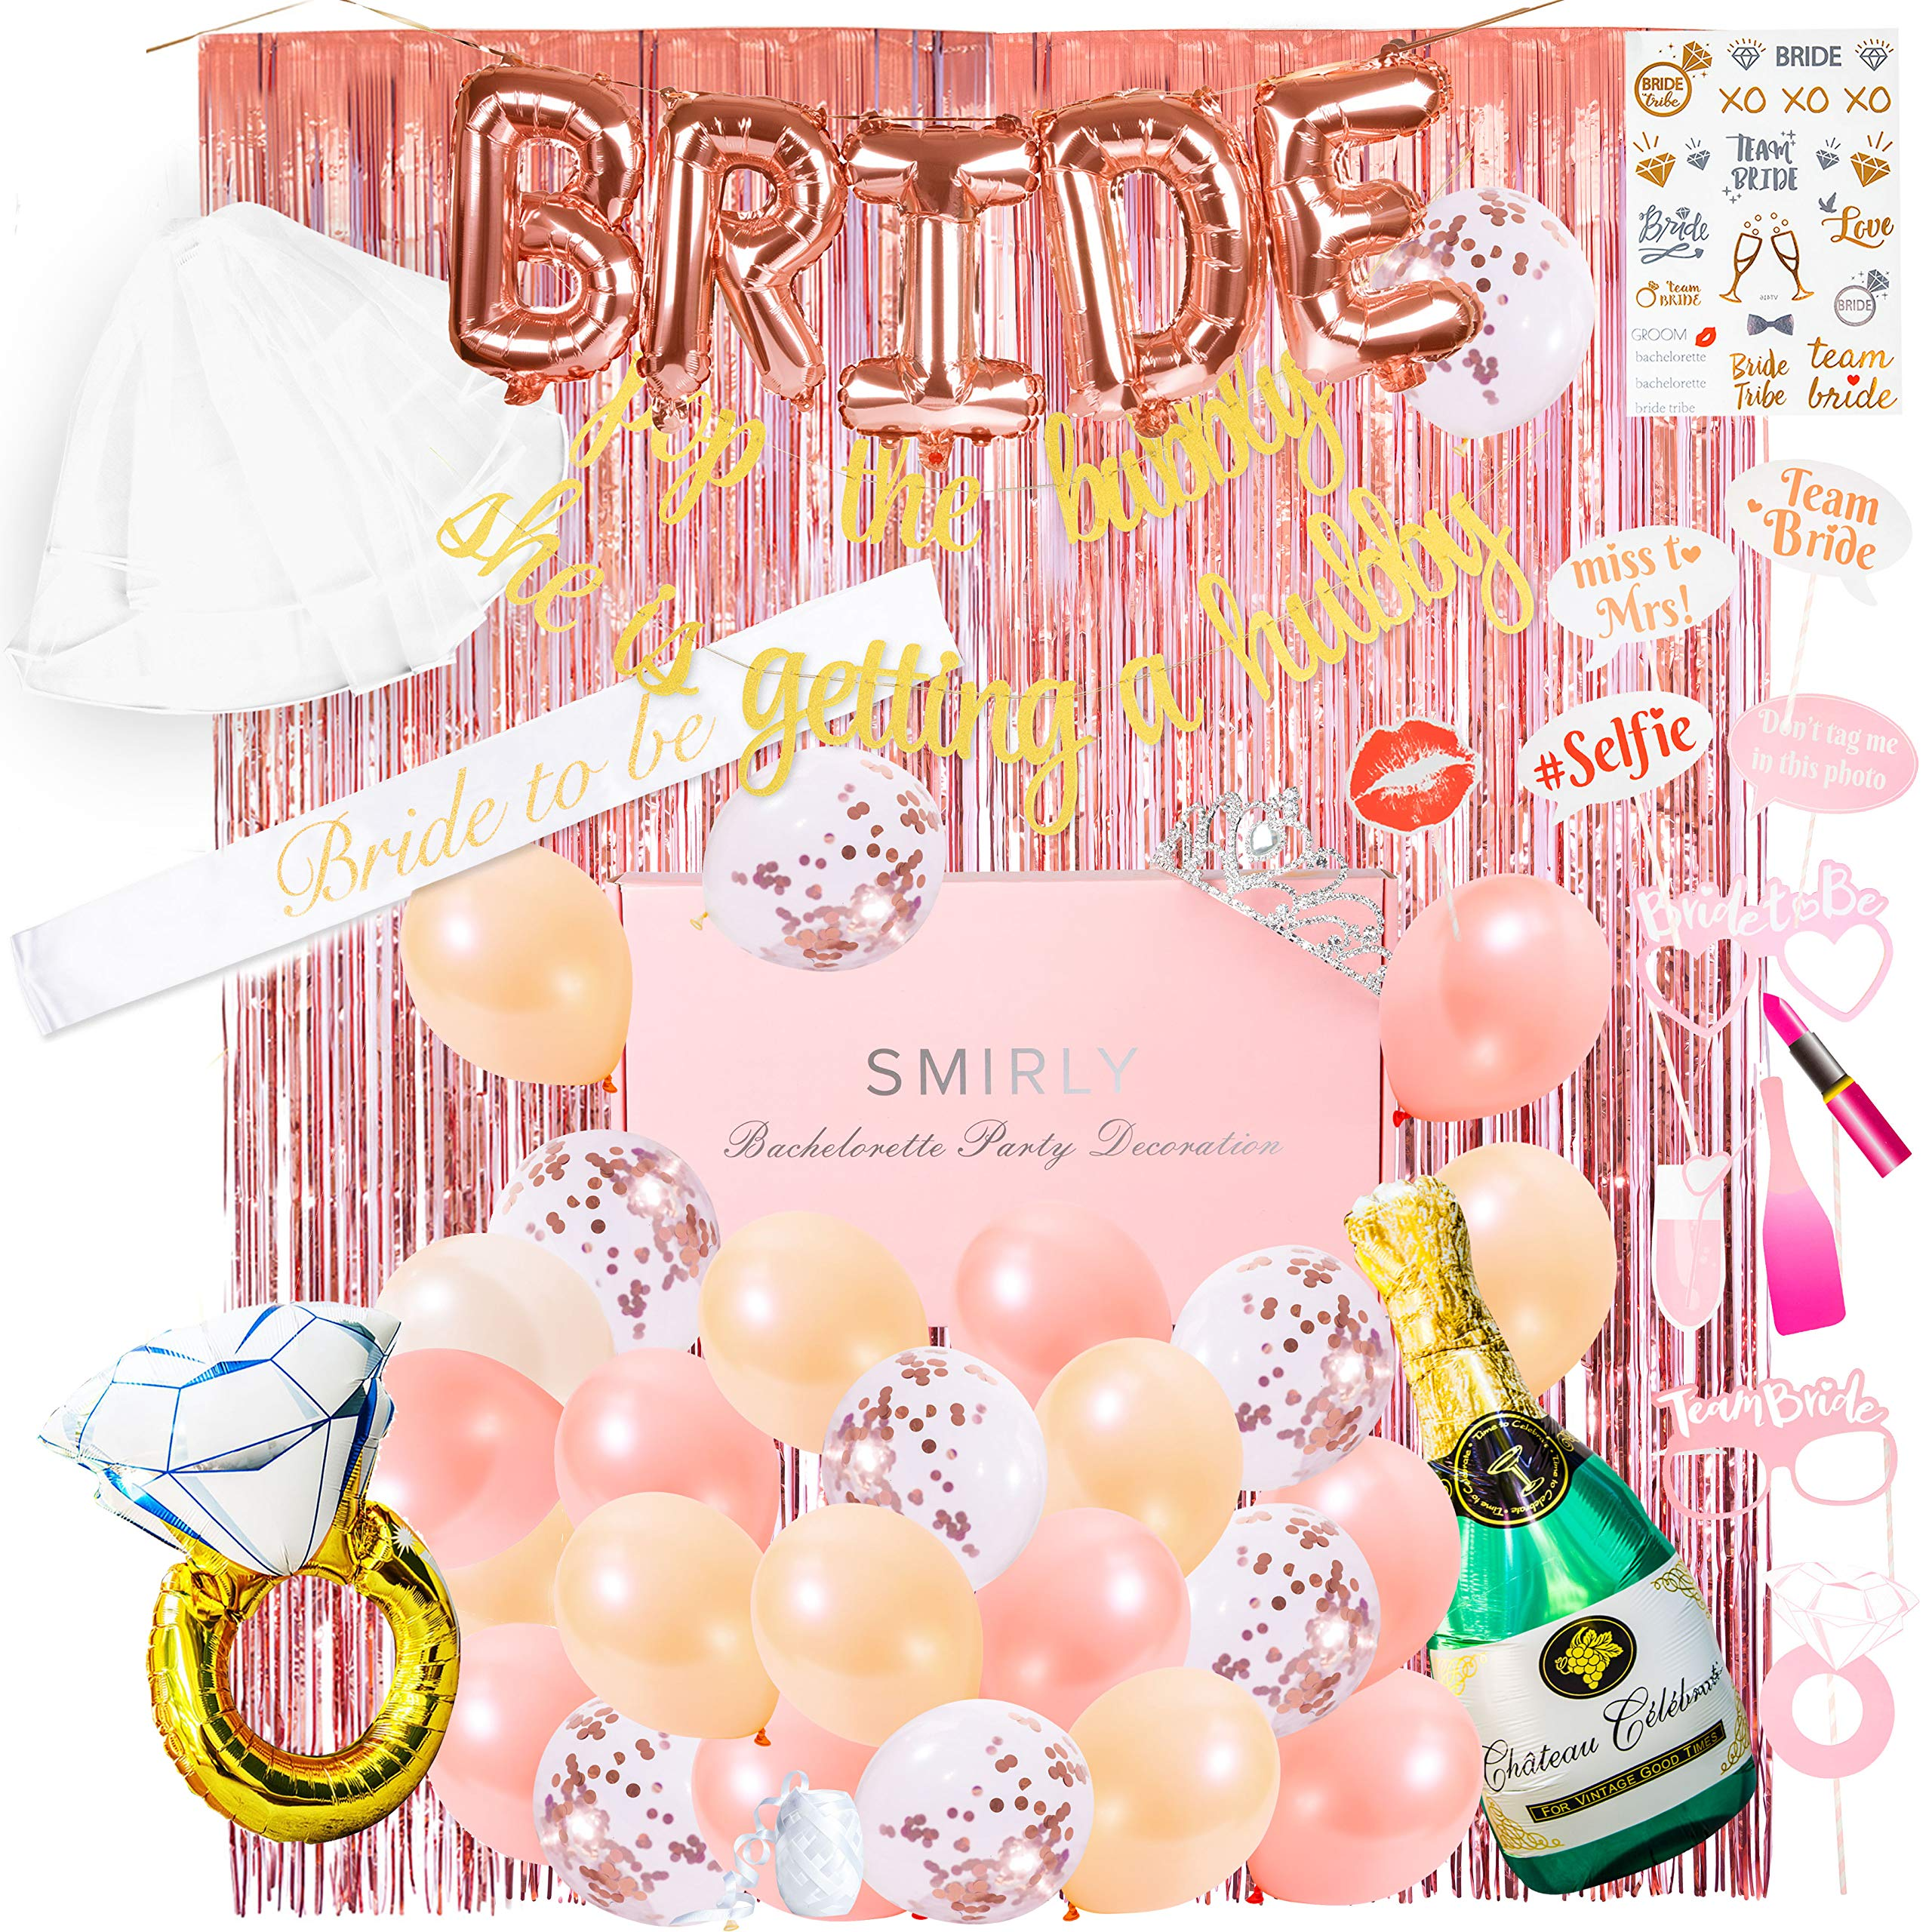 Smirly Bachelorette Party Decorations Kit: Rose Gold Bridal Shower Party Decor and Supplies - Includes Bride Sash, Gold Glitter Banner, Foil Balloons, Flash Tattoos, Tinsel Curtain, and More - 50 Pack